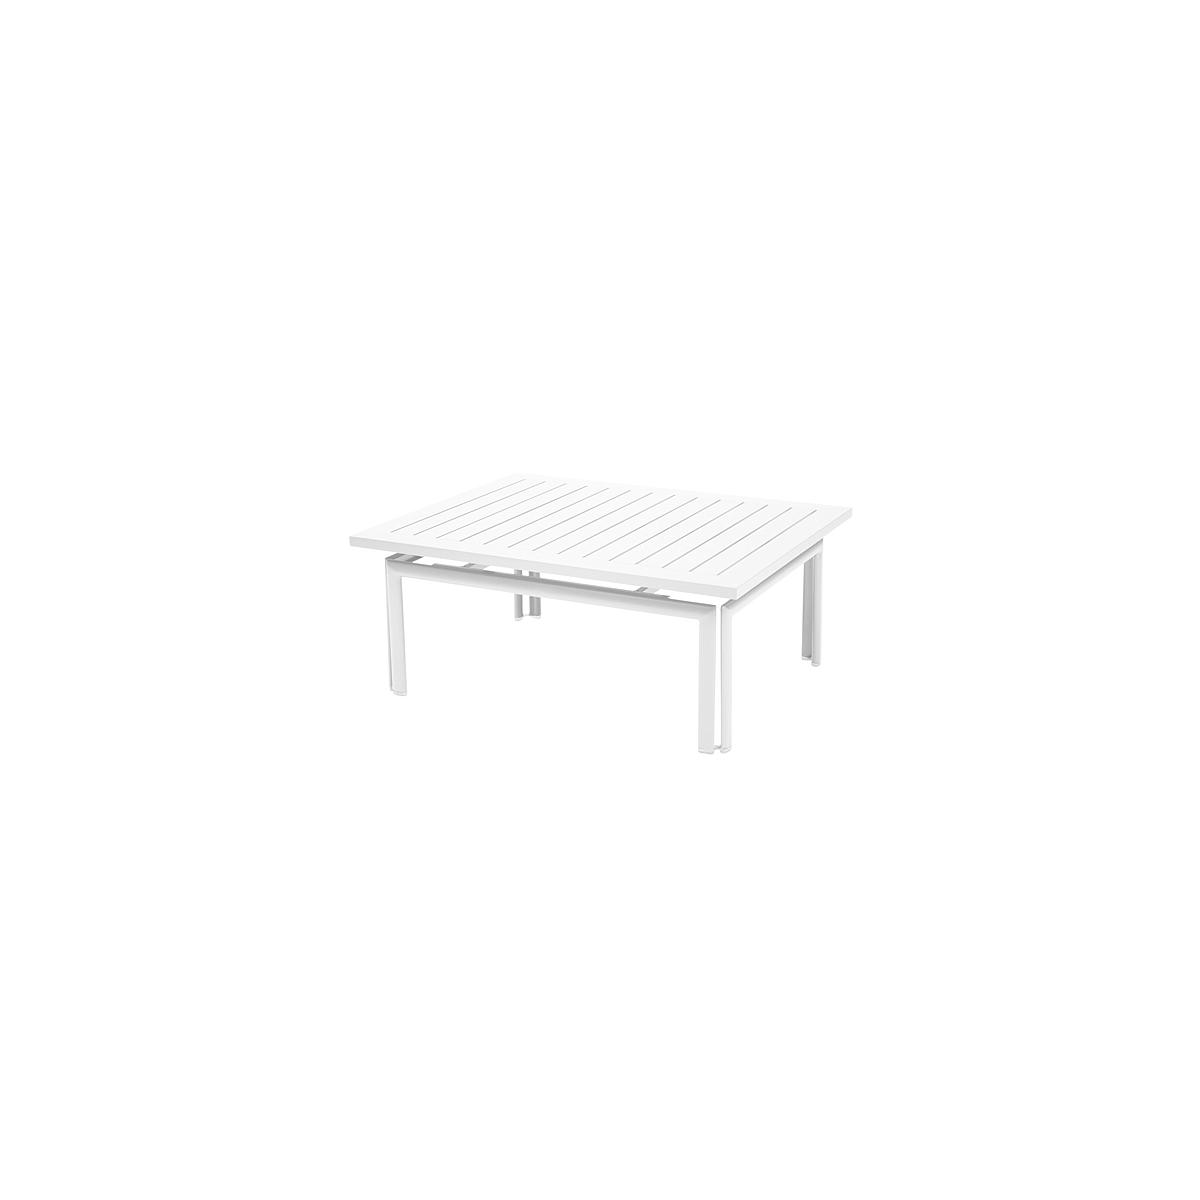 COSTA by Fermob Table basse Blanc coton